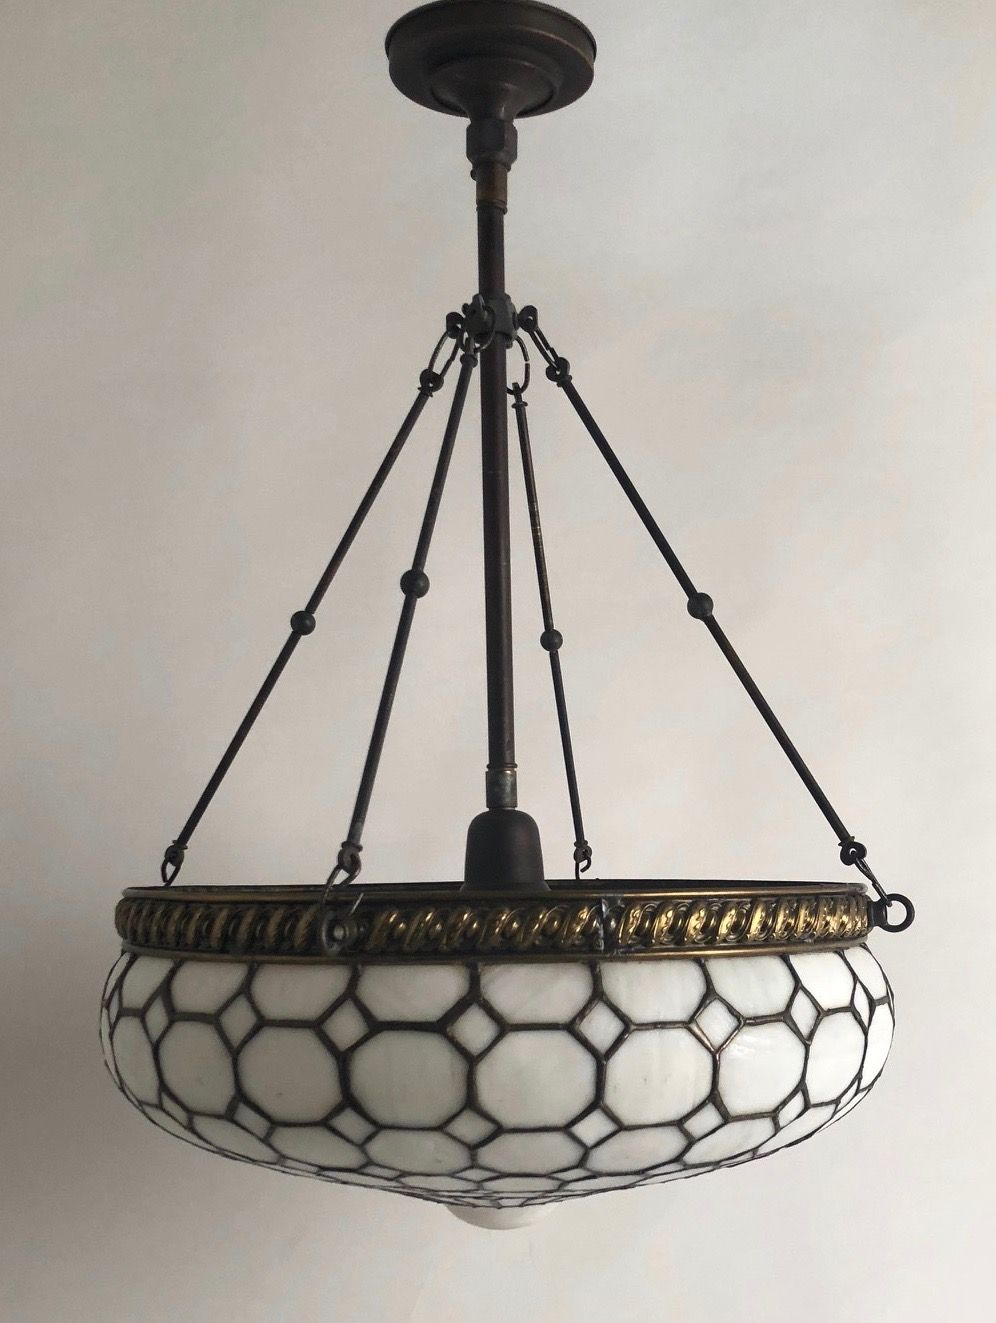 One of if not the nicest circa 1900 leaded glass inverted dome we have had this year quite a bit of artistic stained glass work wit into this fixture